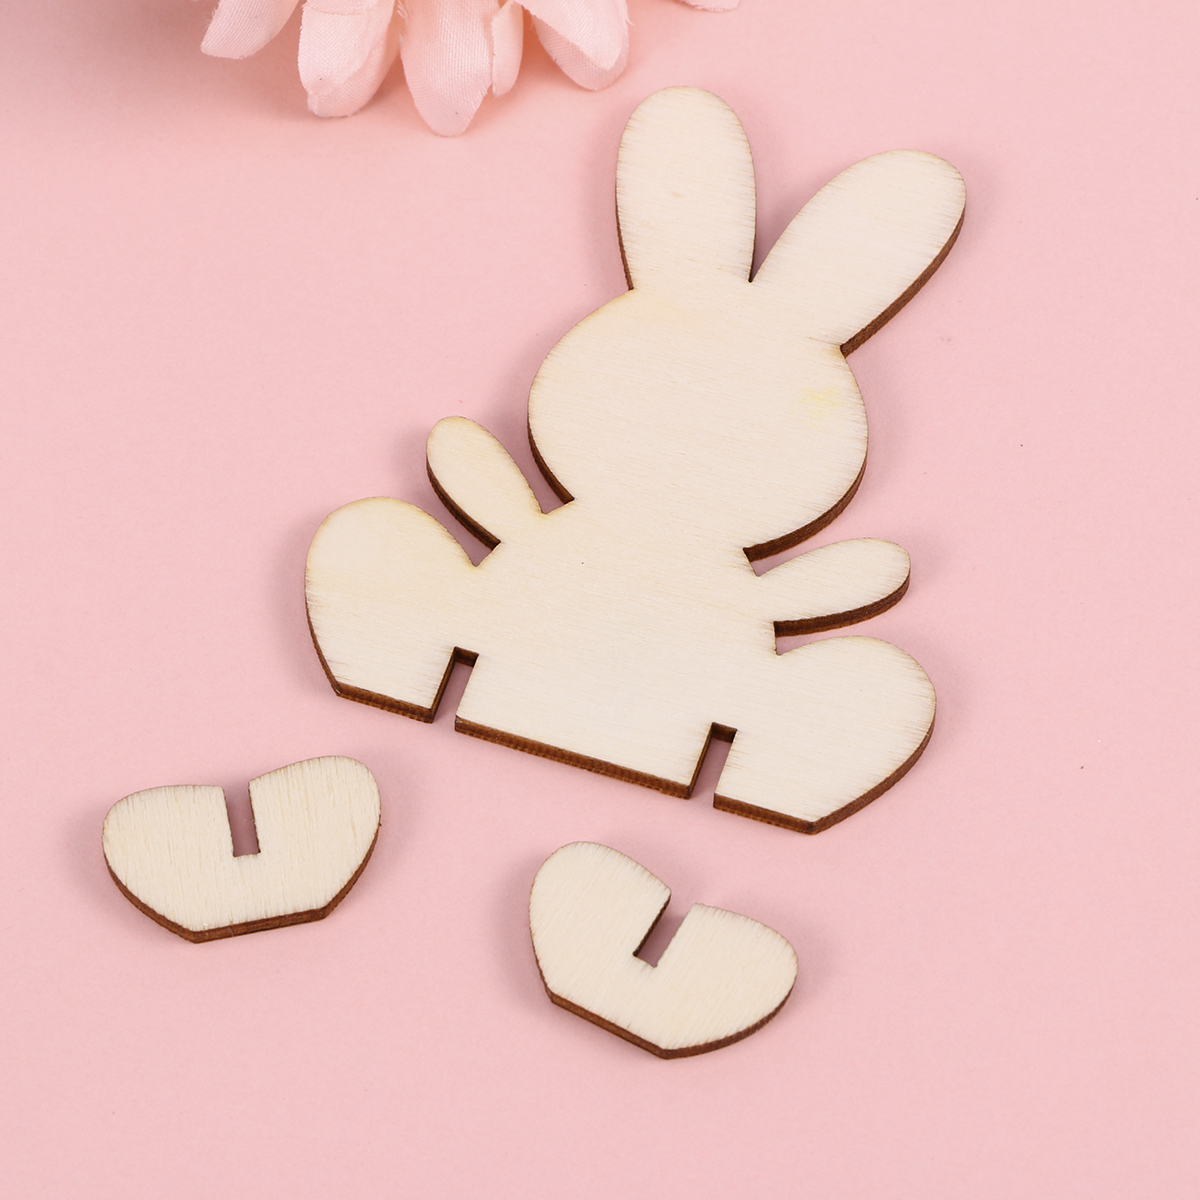 Us 608 40 Off10 Pcs Easter Rabbit Pieces Diy Lovely Wooden 3d Creative Home Decor Bunny Ornament Embellishments Cutouts Craft In Wood Diy Crafts